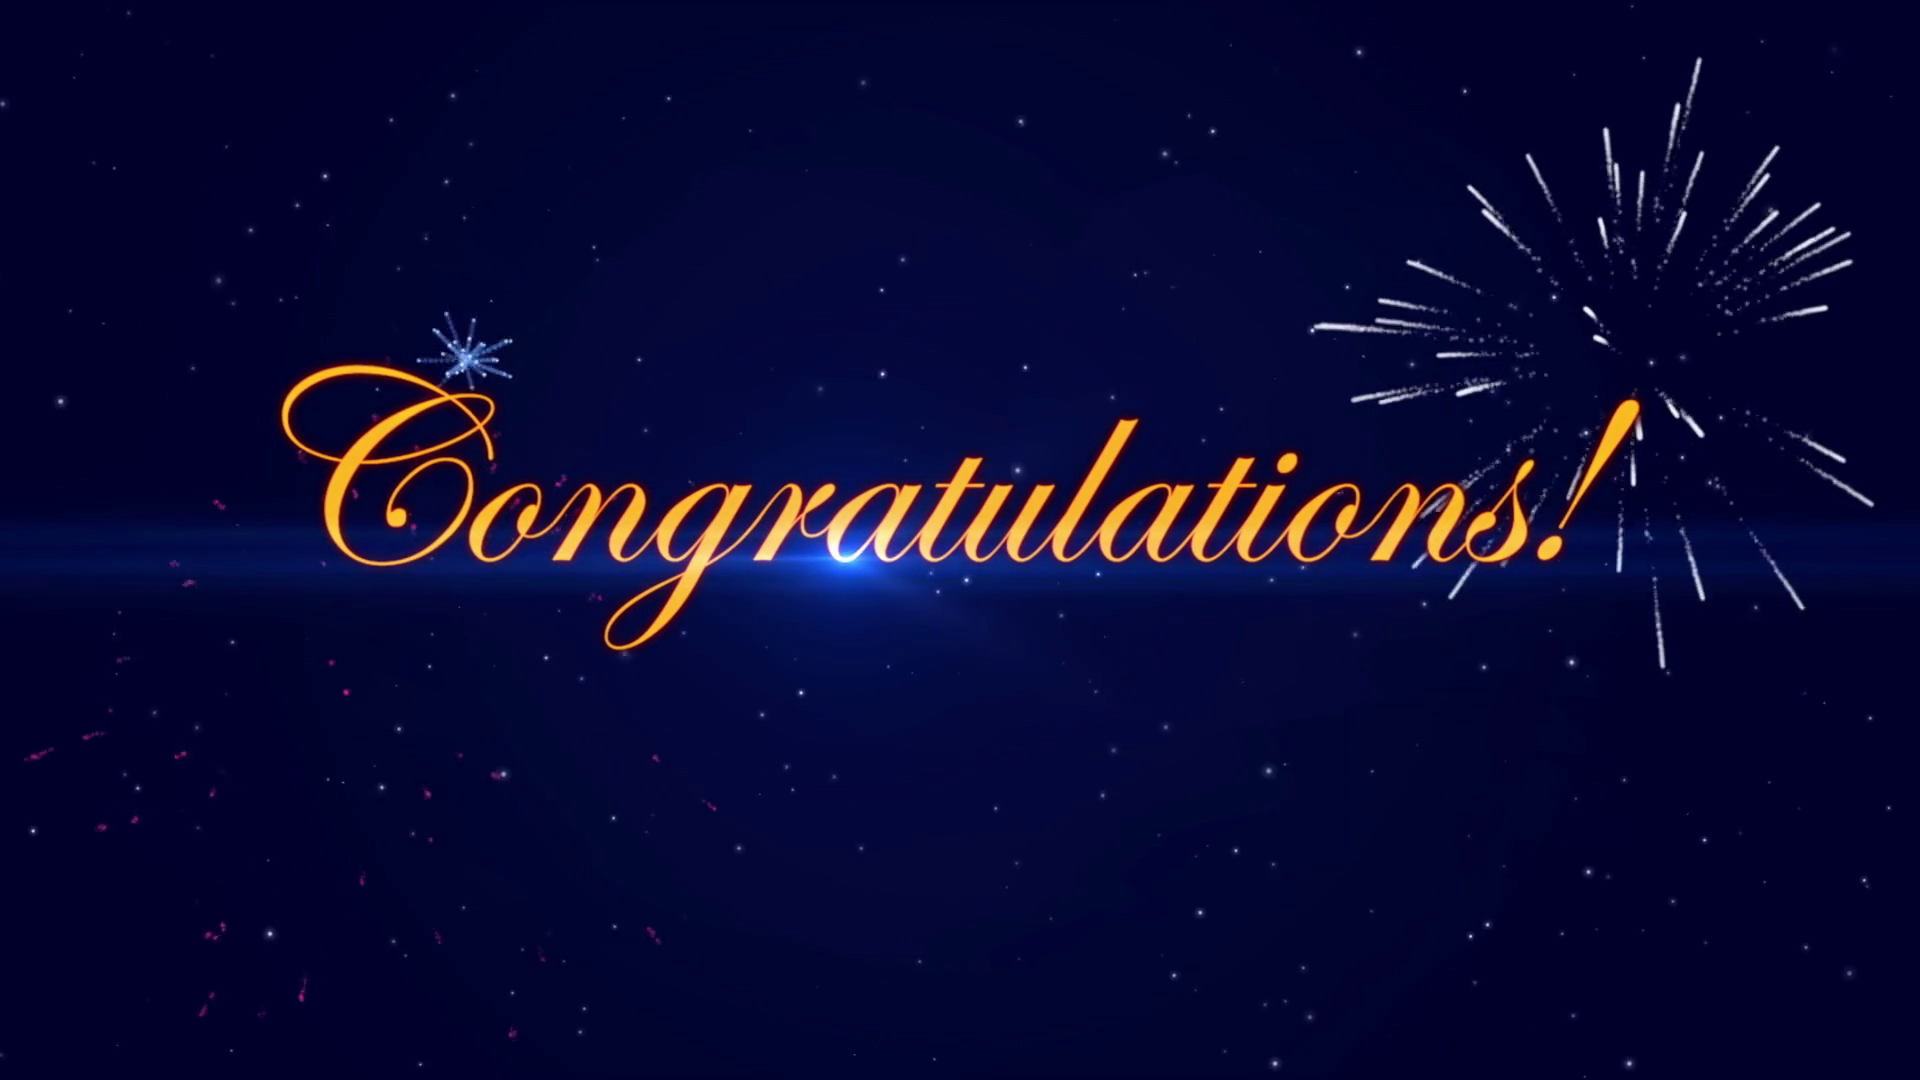 Congratulations With A Fireworks Dark Blue Background